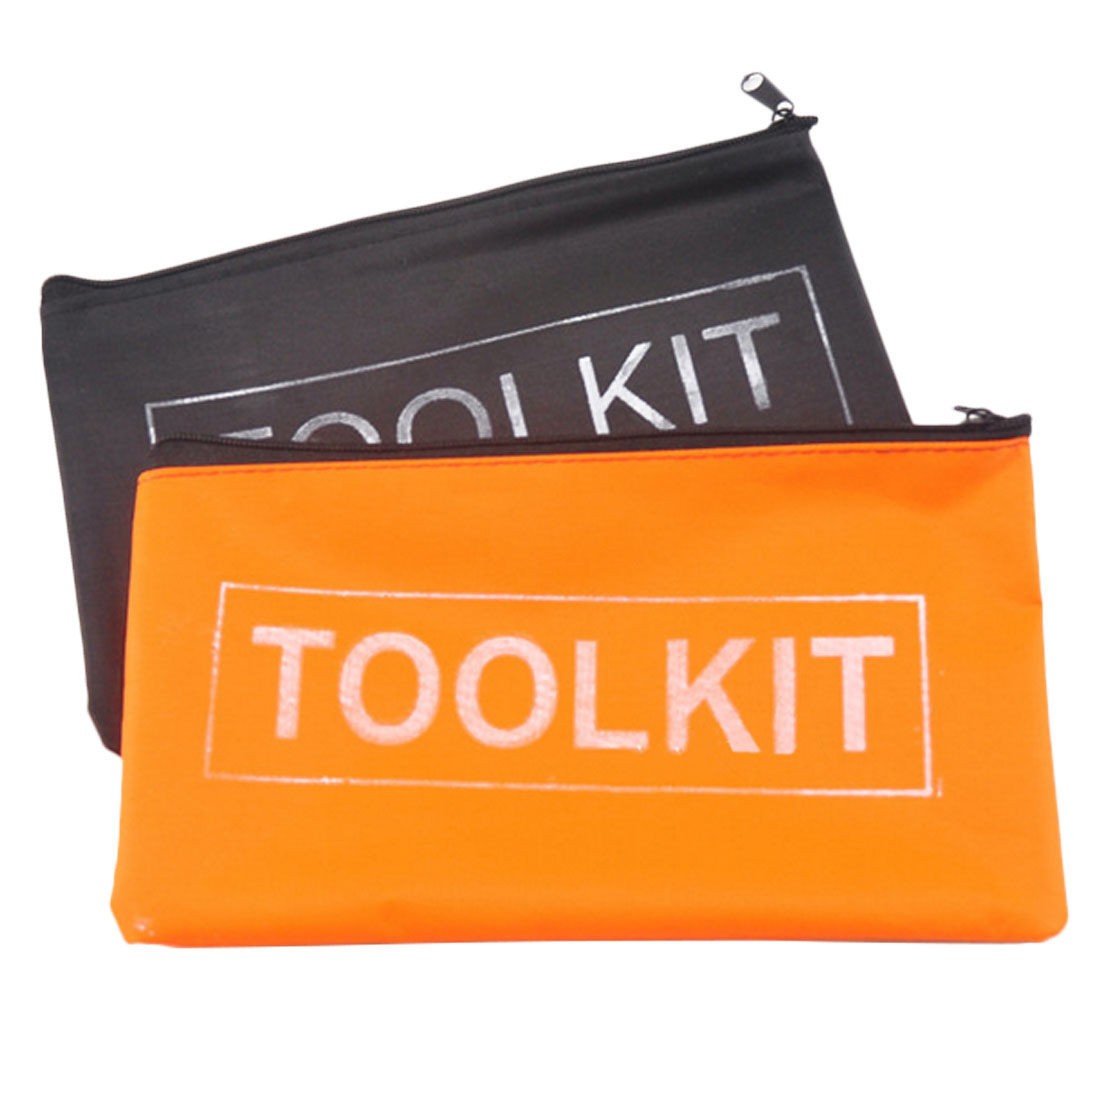 Black Yellow Waterproof Oxford Cloth Tools Set Bag Zipper Storage Instrument Case Pouch Tool Kit Packaging Bag Tool Organizers